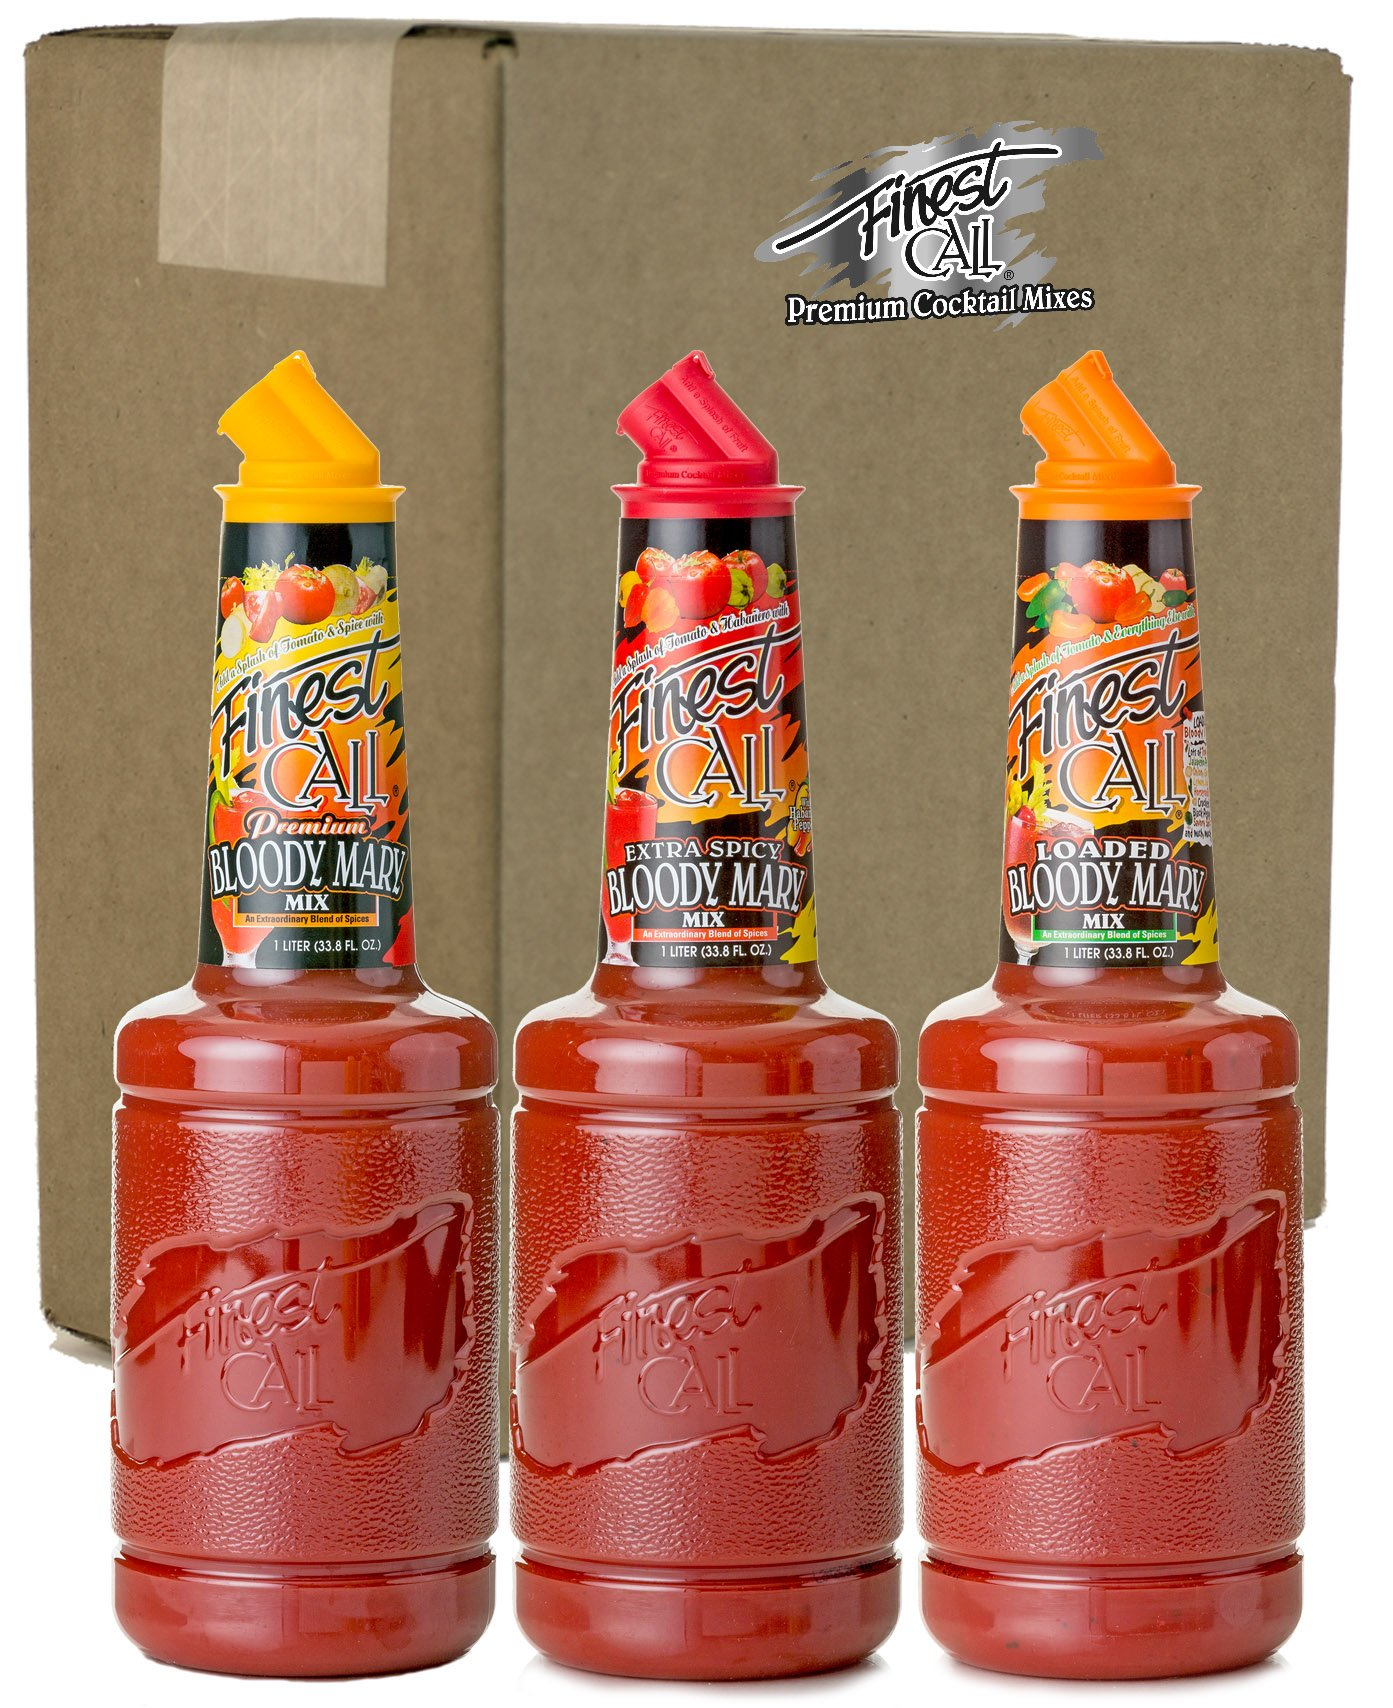 Finest Call Premium Bloody Mary Variety Pack, 1 Liter Bottles (33.8 Fl Oz), Pack of 3 Flavors